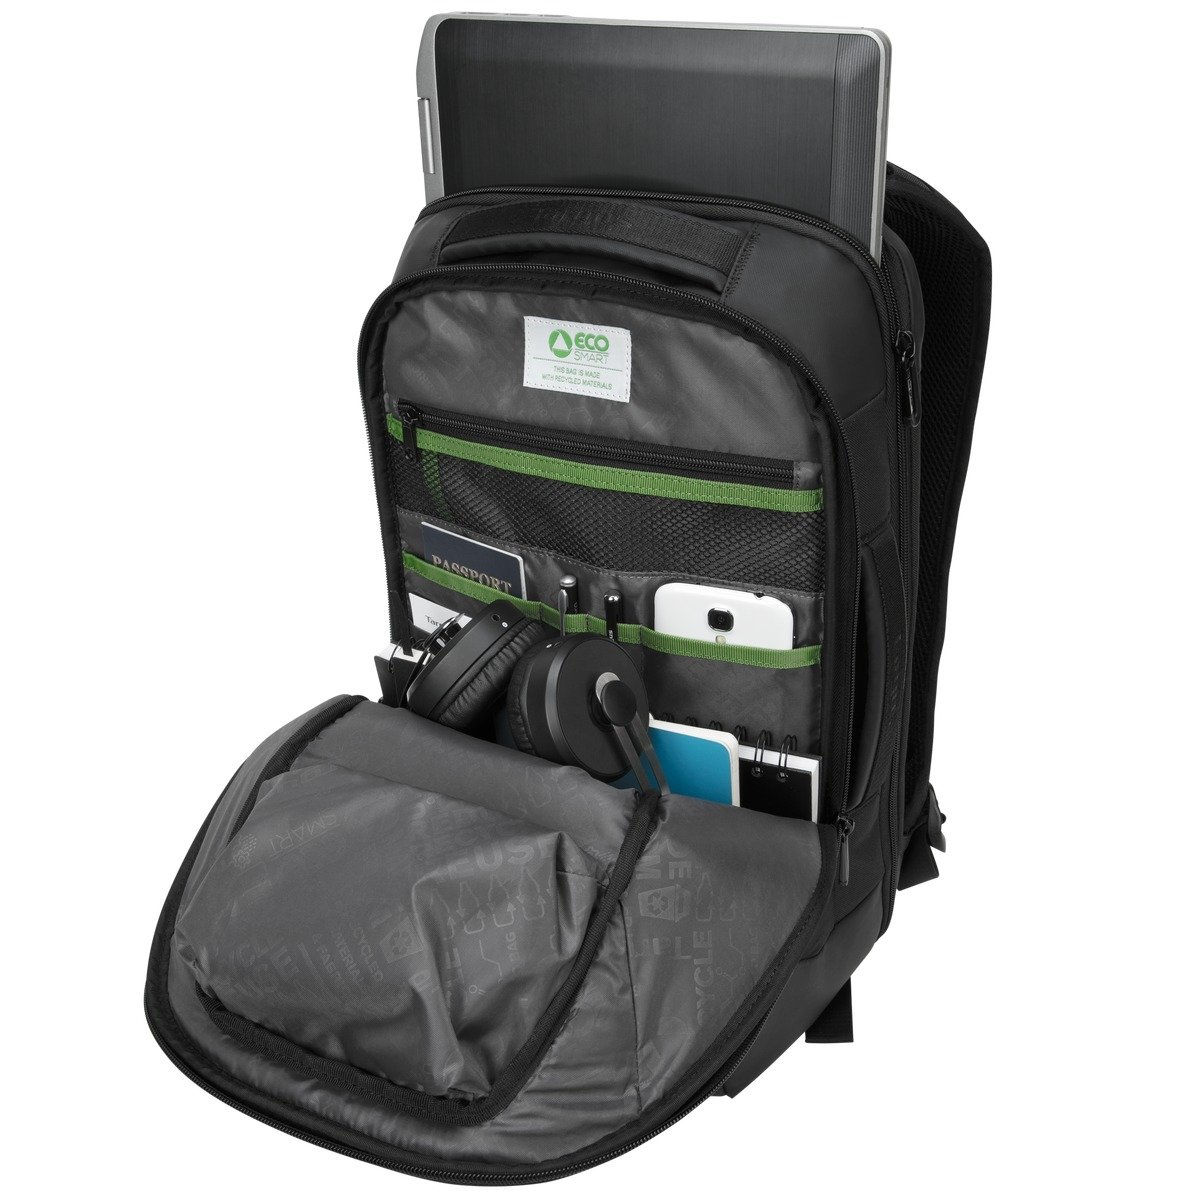 a4dcdfd5d Tsb212 Targus Sport Computer Backpack | Sabis Bulldog Athletics